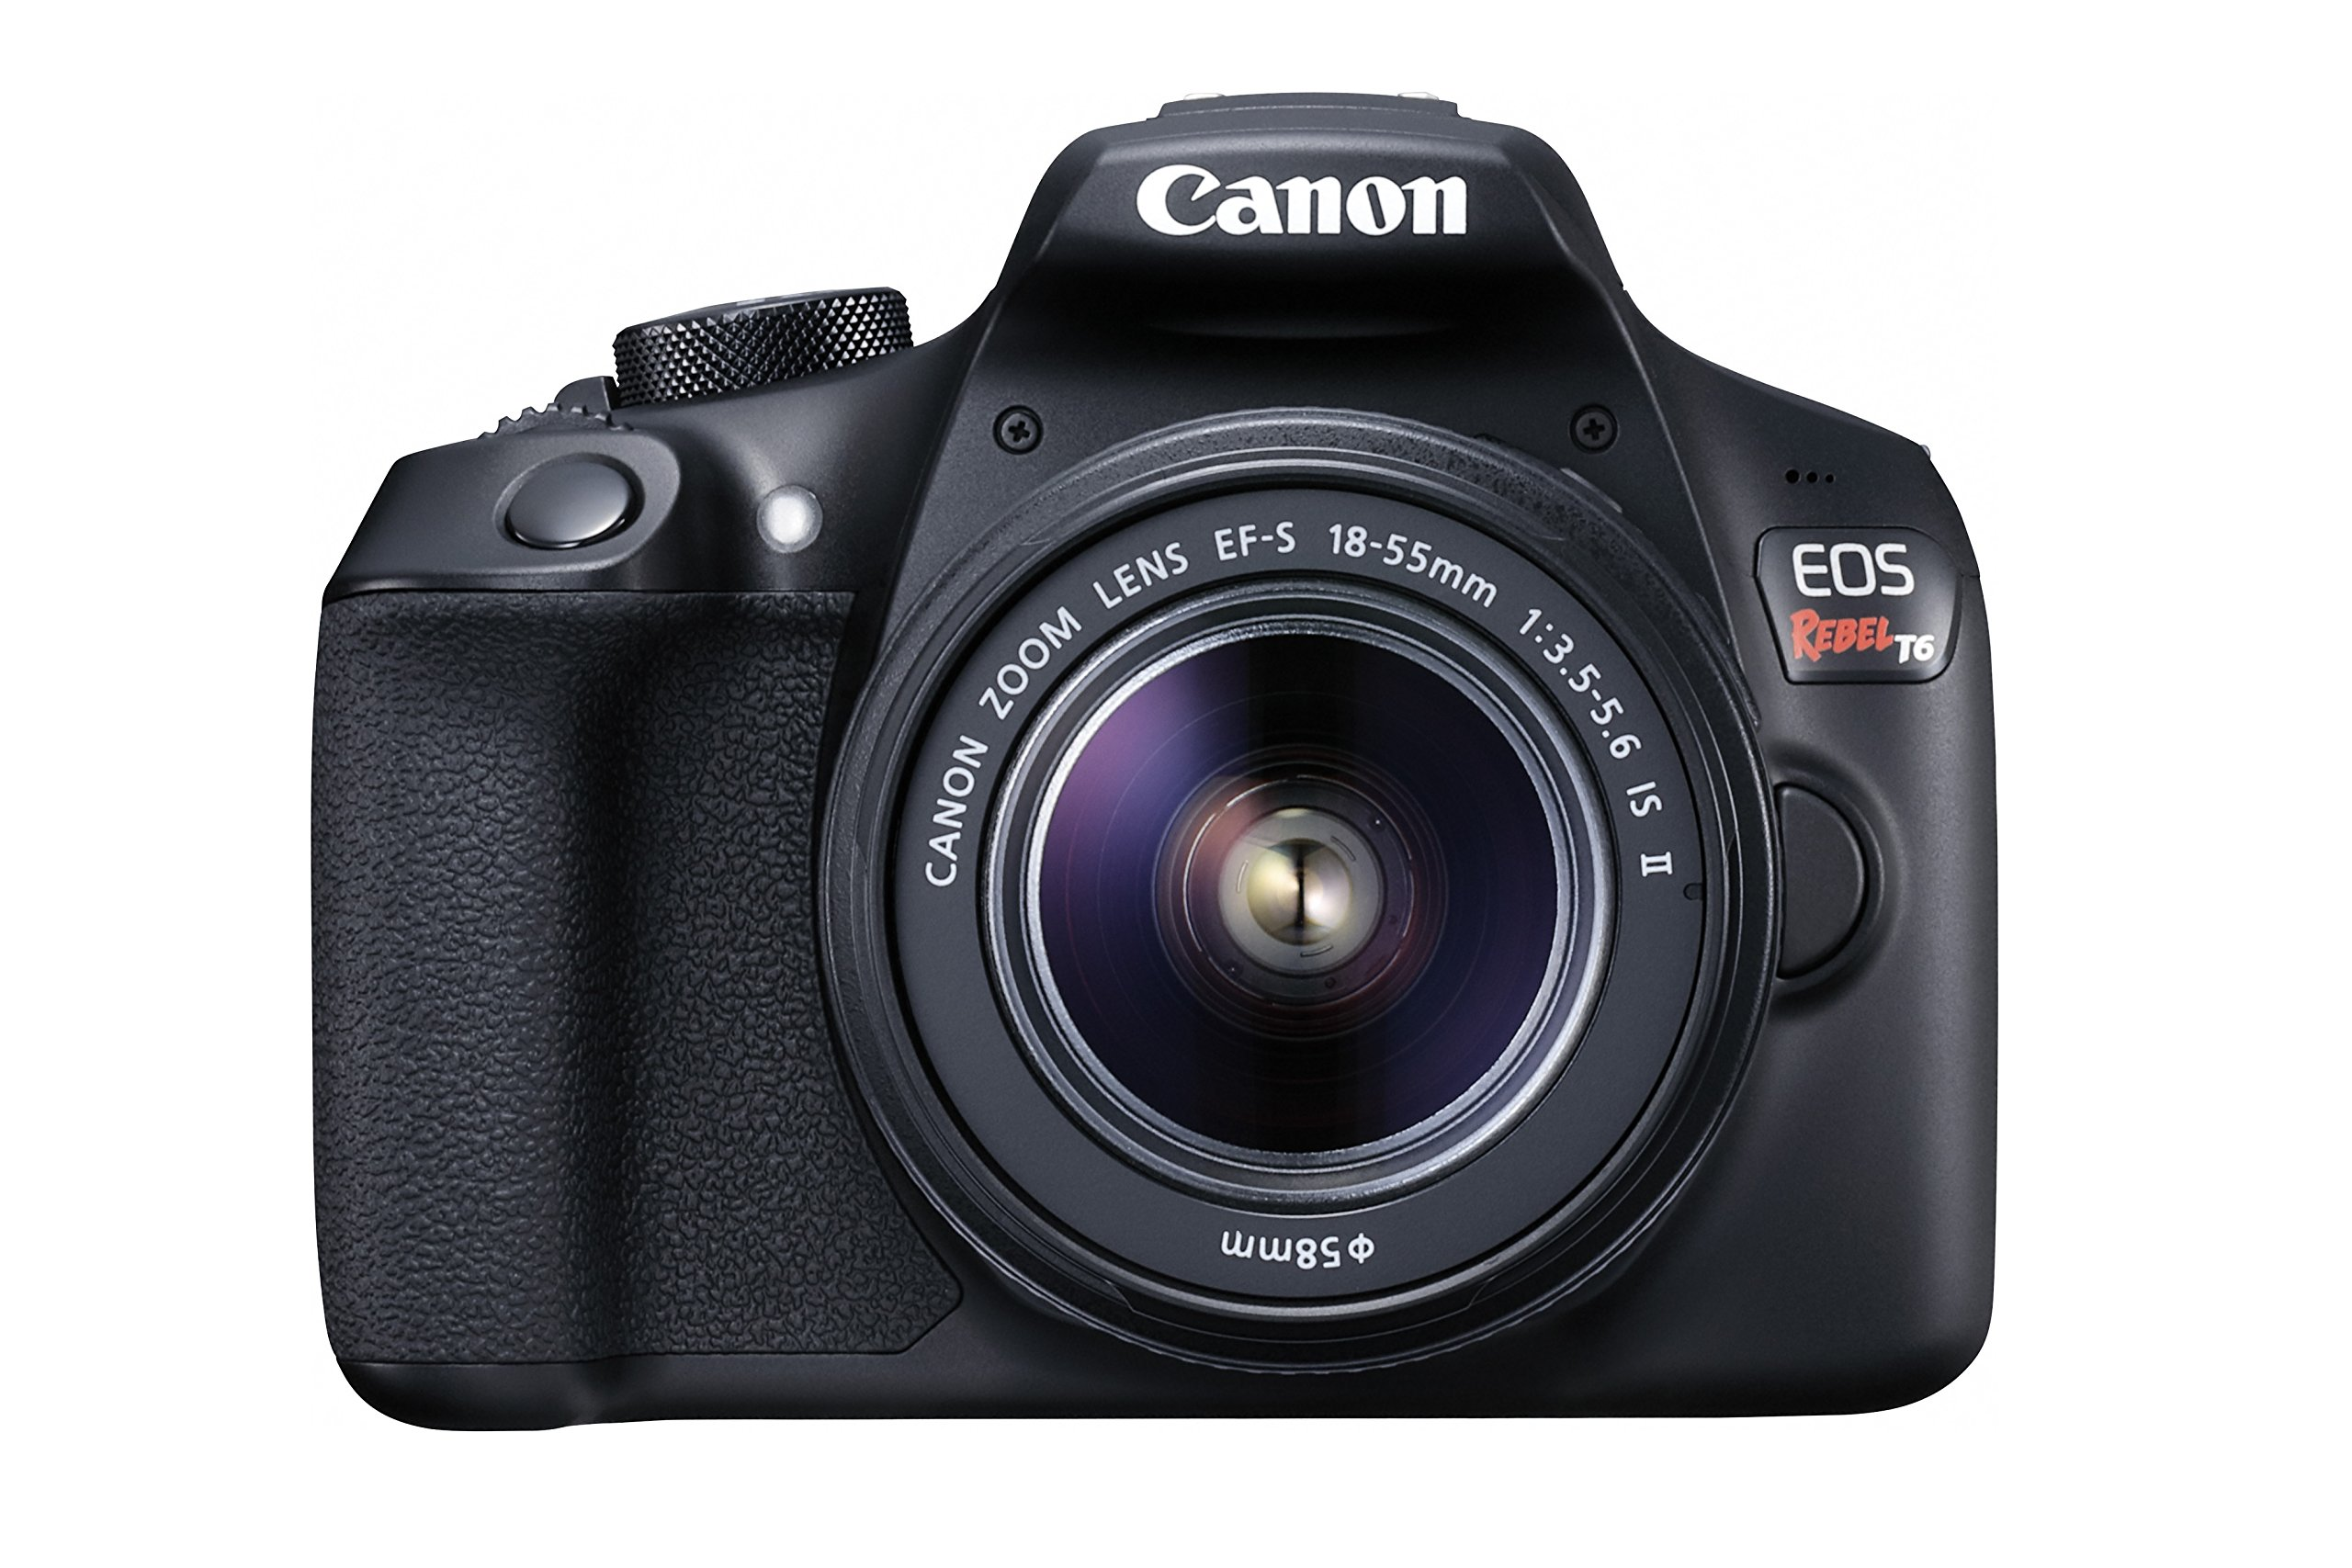 Canon EOS Rebel T6 Digital SLR Camera Kit with EF-S 18-55mm f/3.5-5.6 IS II Lens (Black) by Canon